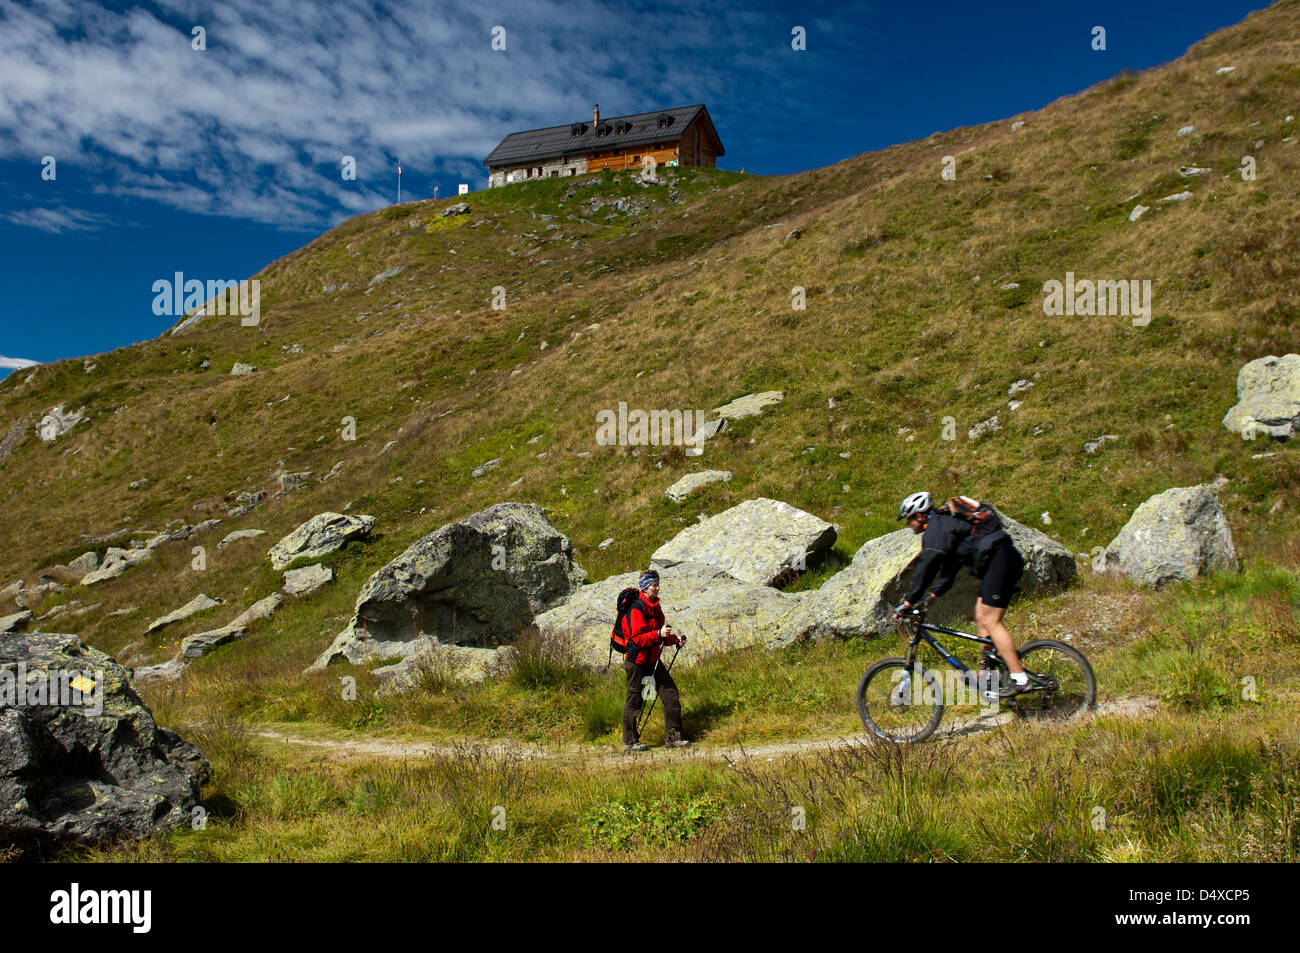 Encounter between a hiker and a mountain biker on a hiking trail, Verbier, Valais, Switzerland - Stock Image